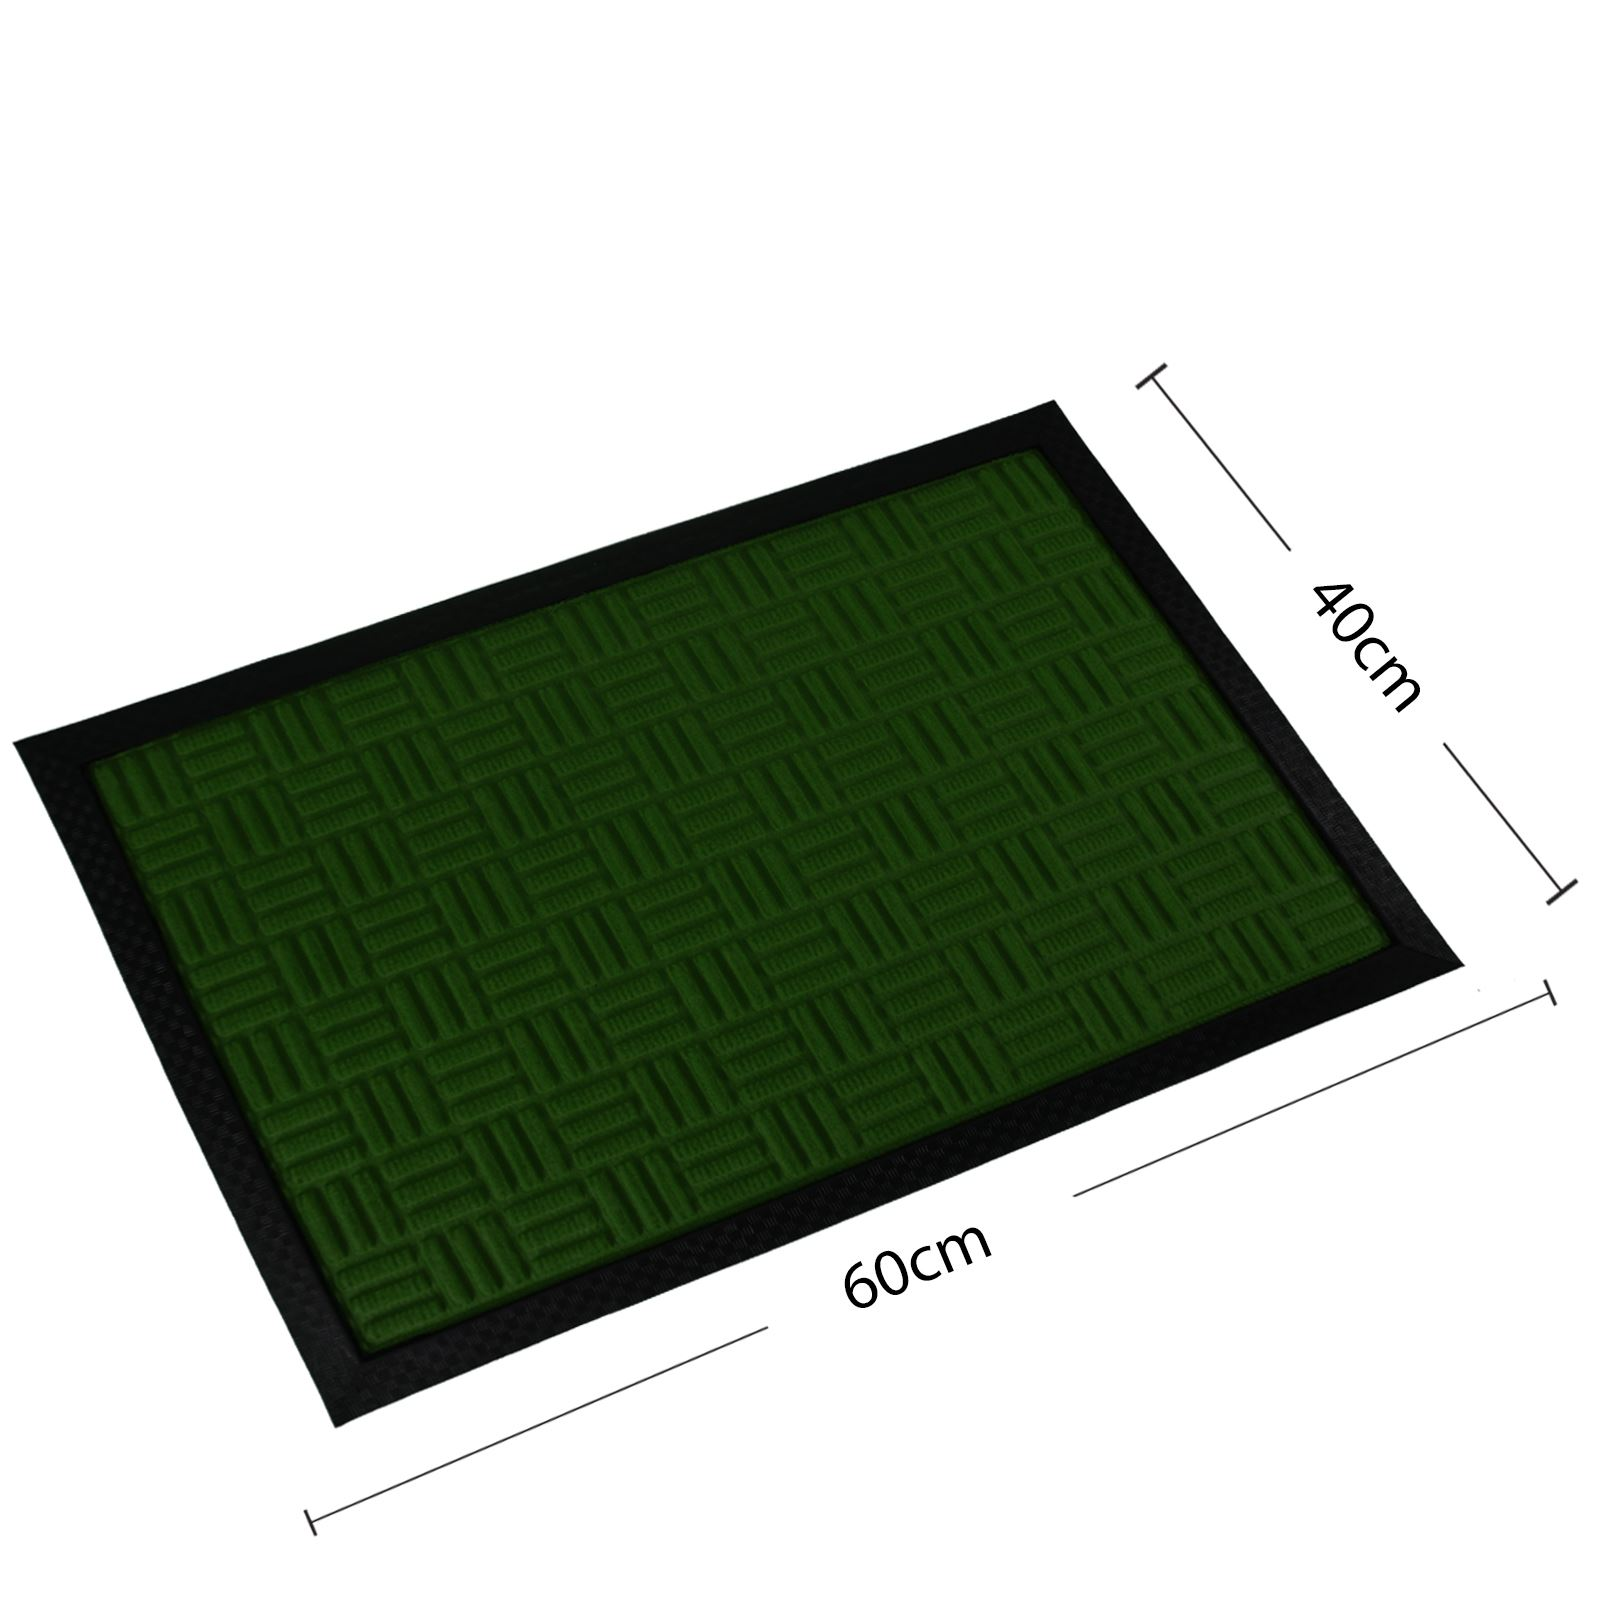 Rubber Welcome Door Entrance Mat Indoor Outdoor Non Slip